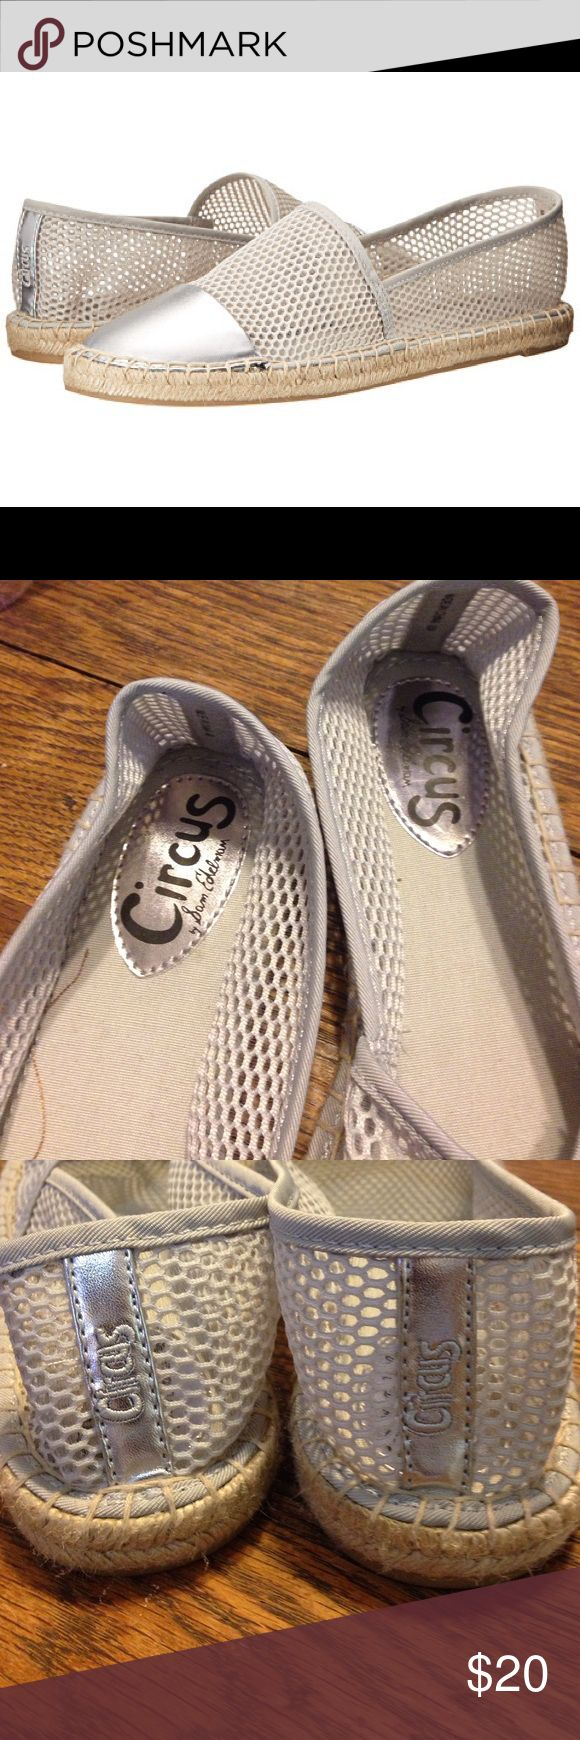 Circus-Sam Edelman Lena mesh silver espadrille 10 Circus by Sam Edelman Lena mesh silver espadrille size 10. Textile and synthetic upper with mesh panels. Lightly cushioned man-made insole. Jute rope detail on outsole. Excellent condition Shoes Espadrilles